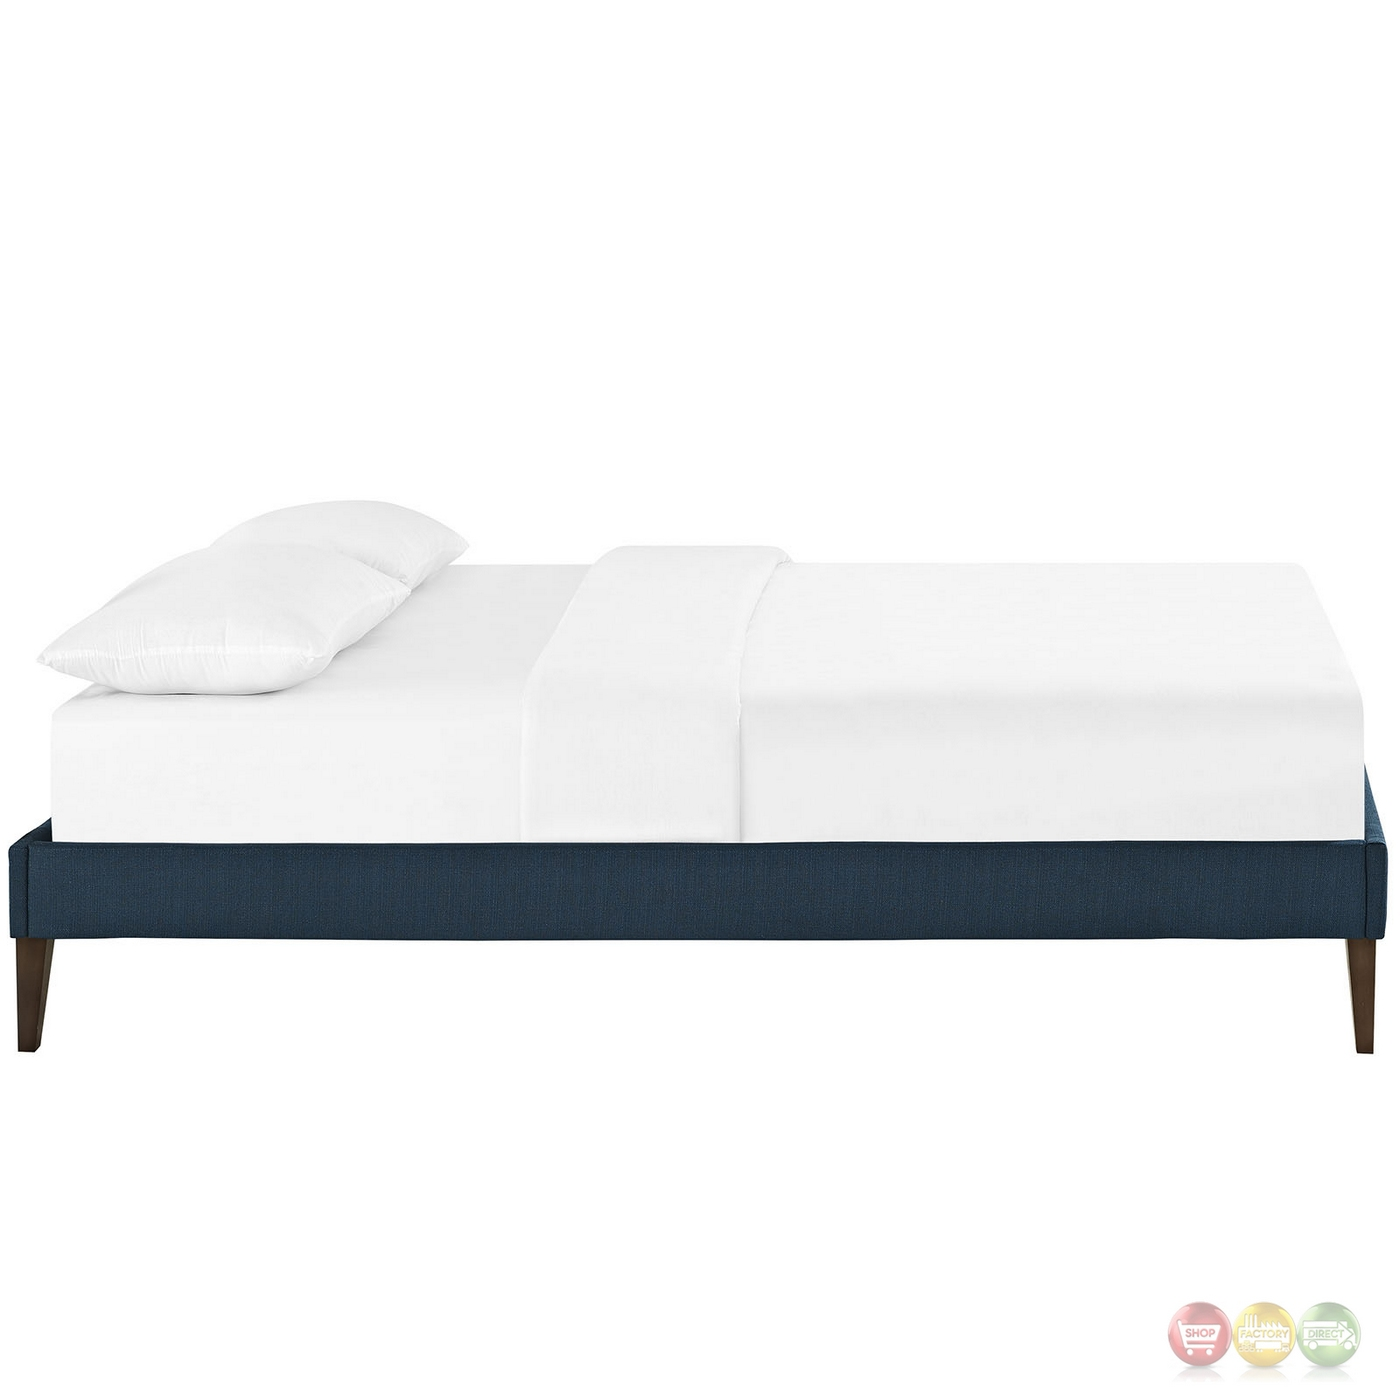 sharon modern king fabric platform bed frame with square legs azure